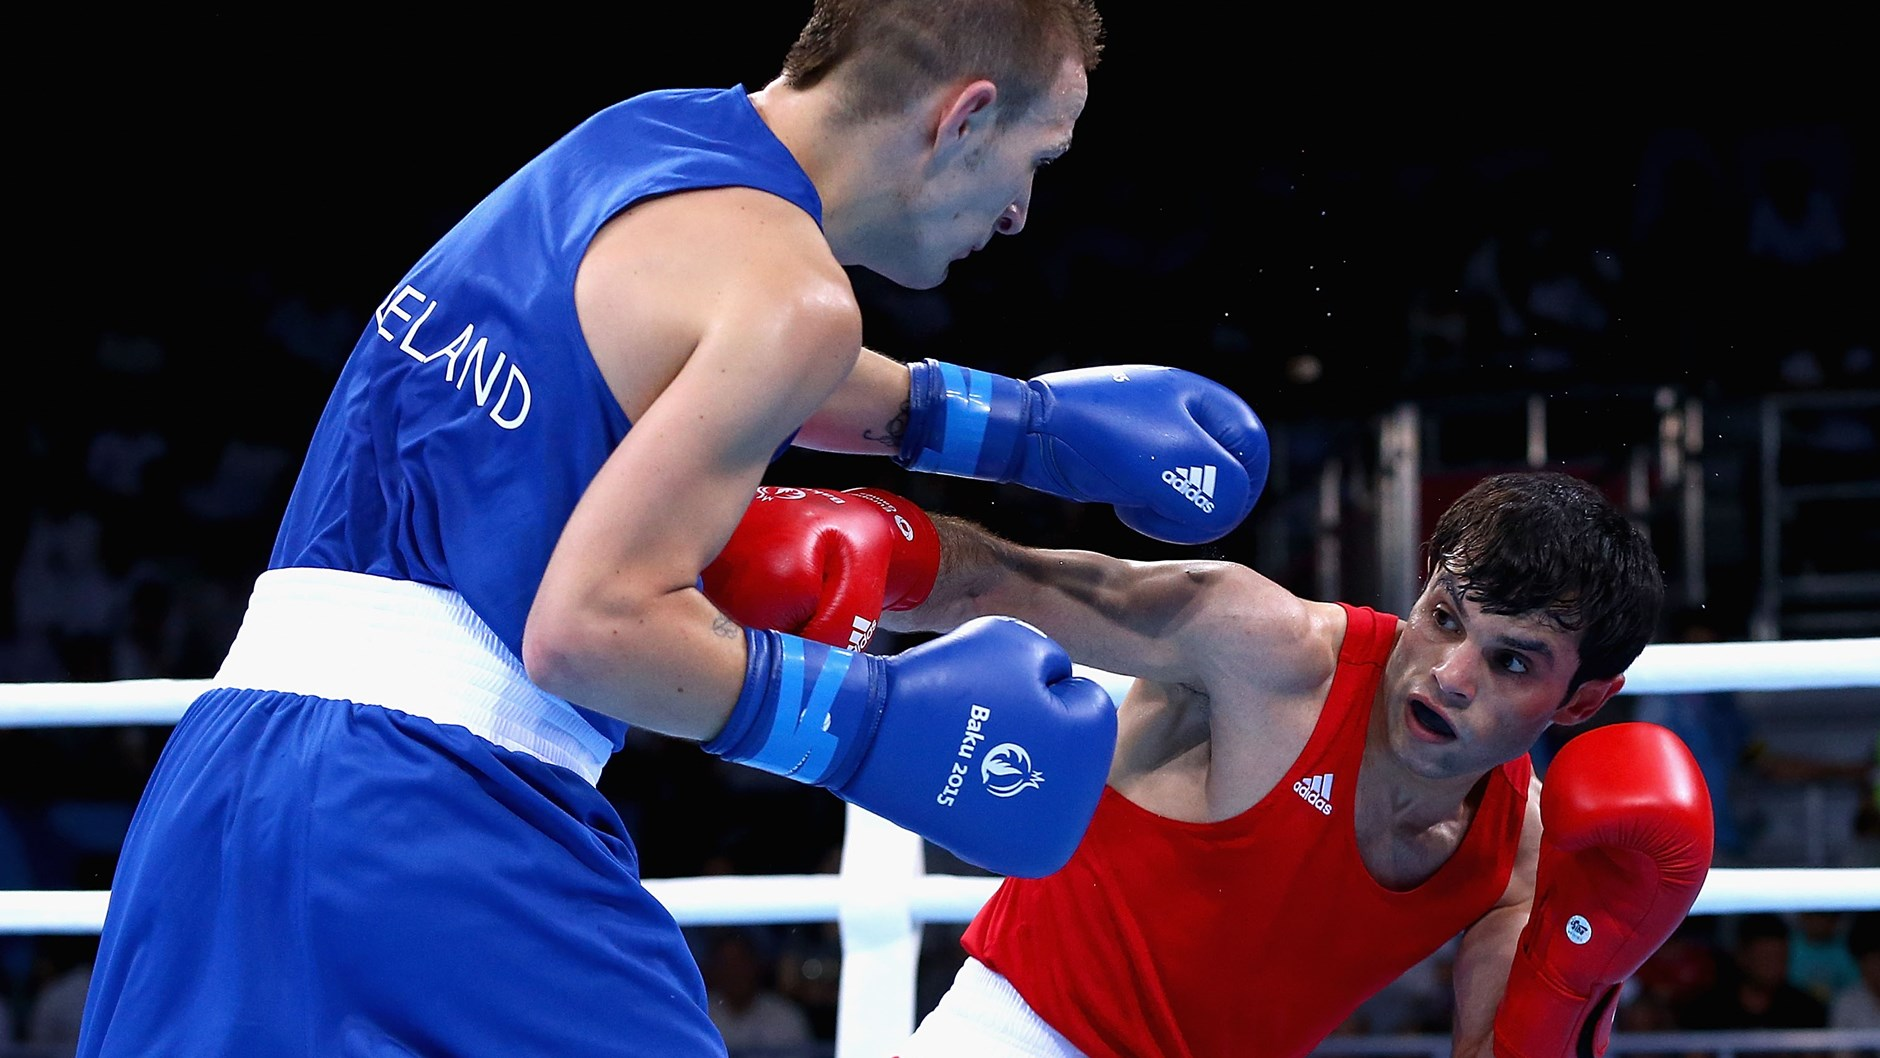 Baku EuroGames Day Results And Day Match Schedule Of - Olympic boxing schedule